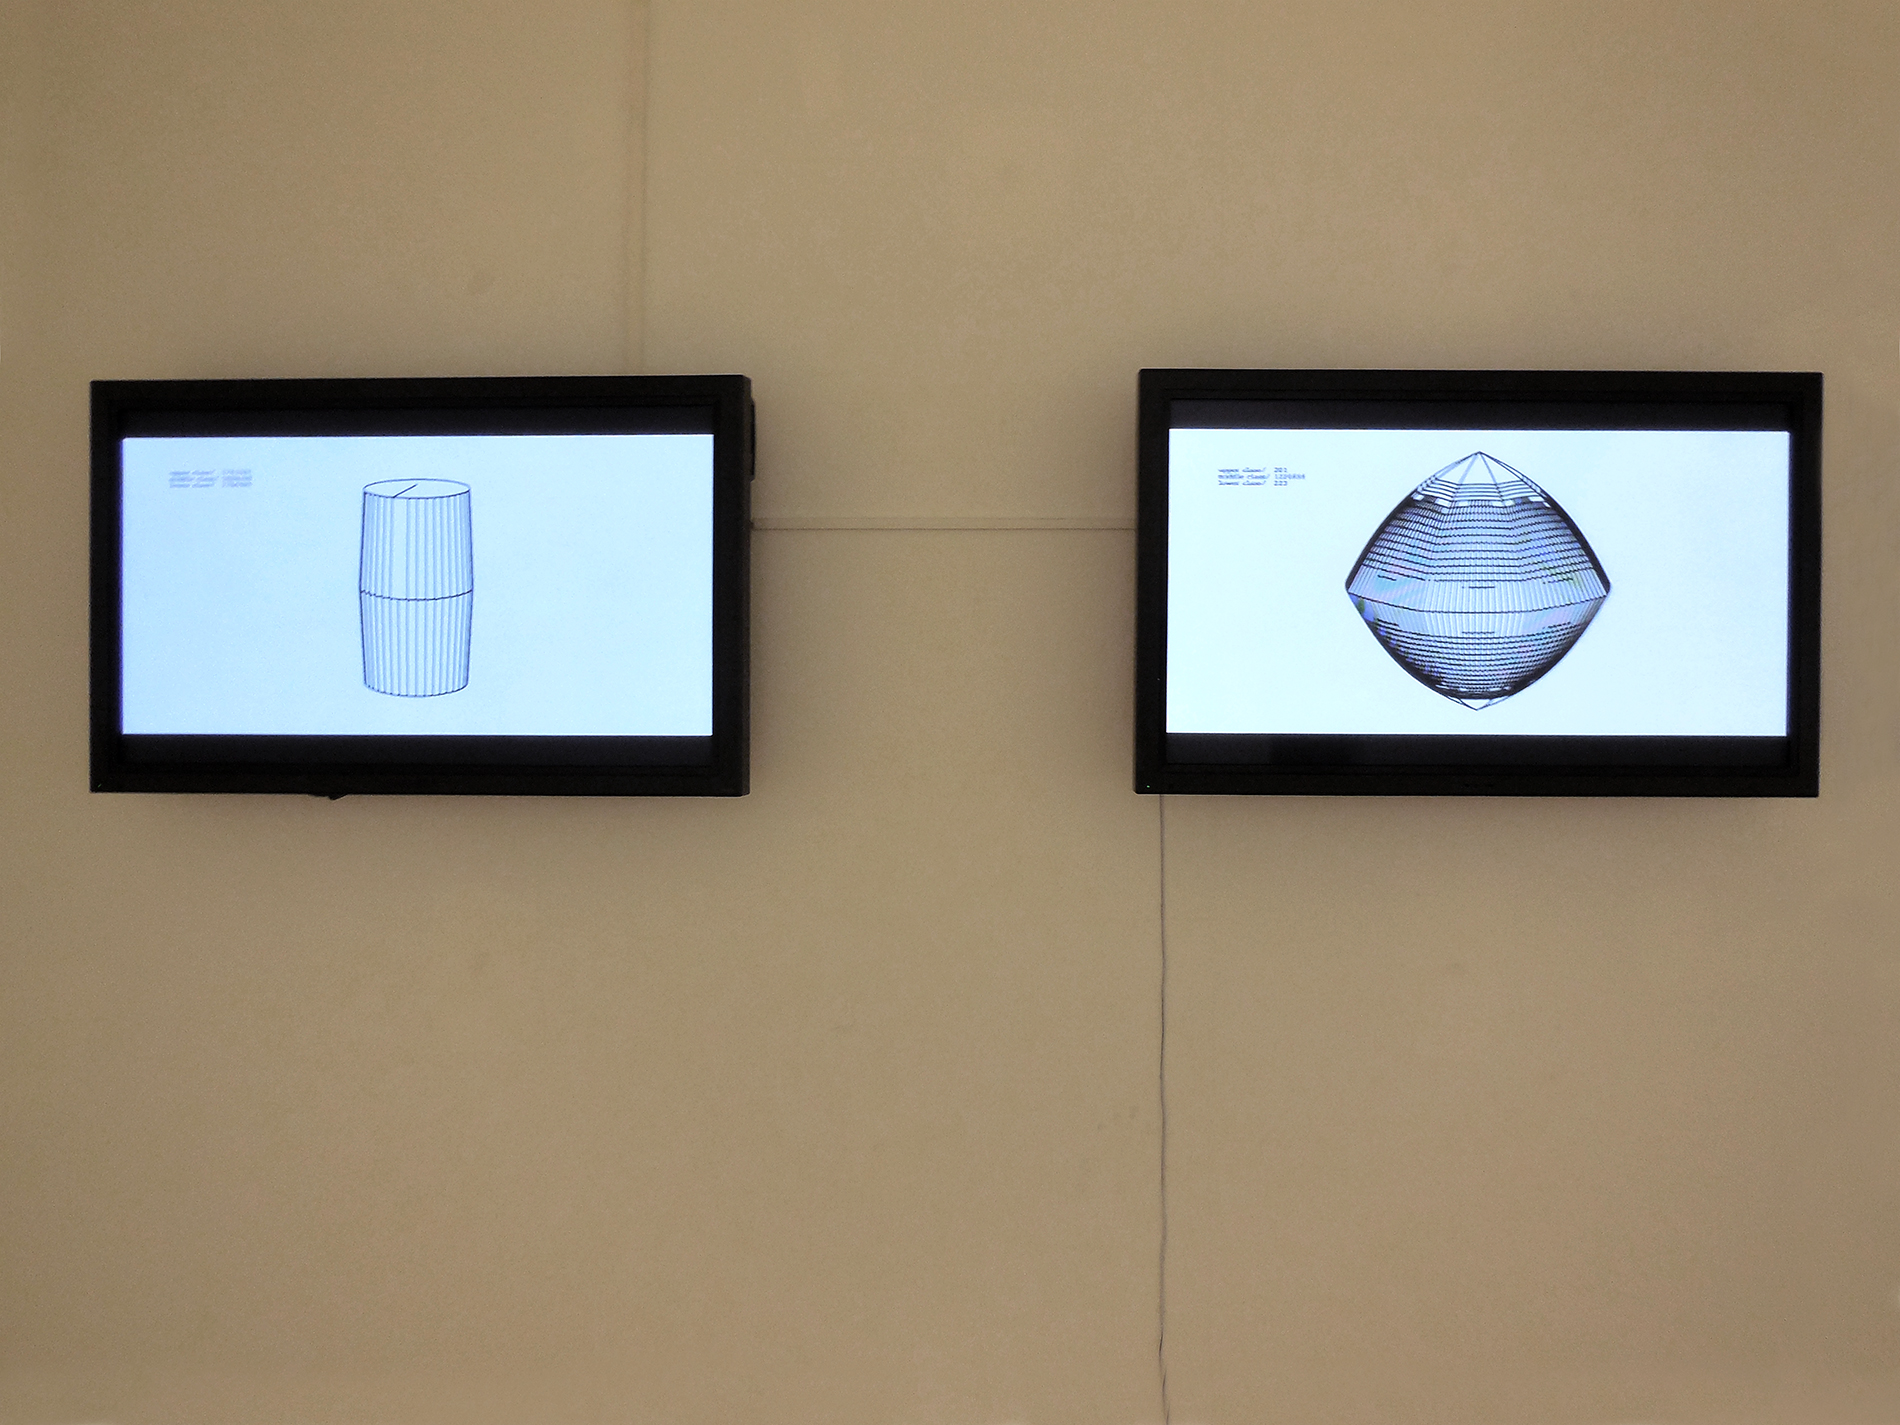 «Class Geometry», 2011, View of the installation at SAC, S/C de Tenerife, 2014